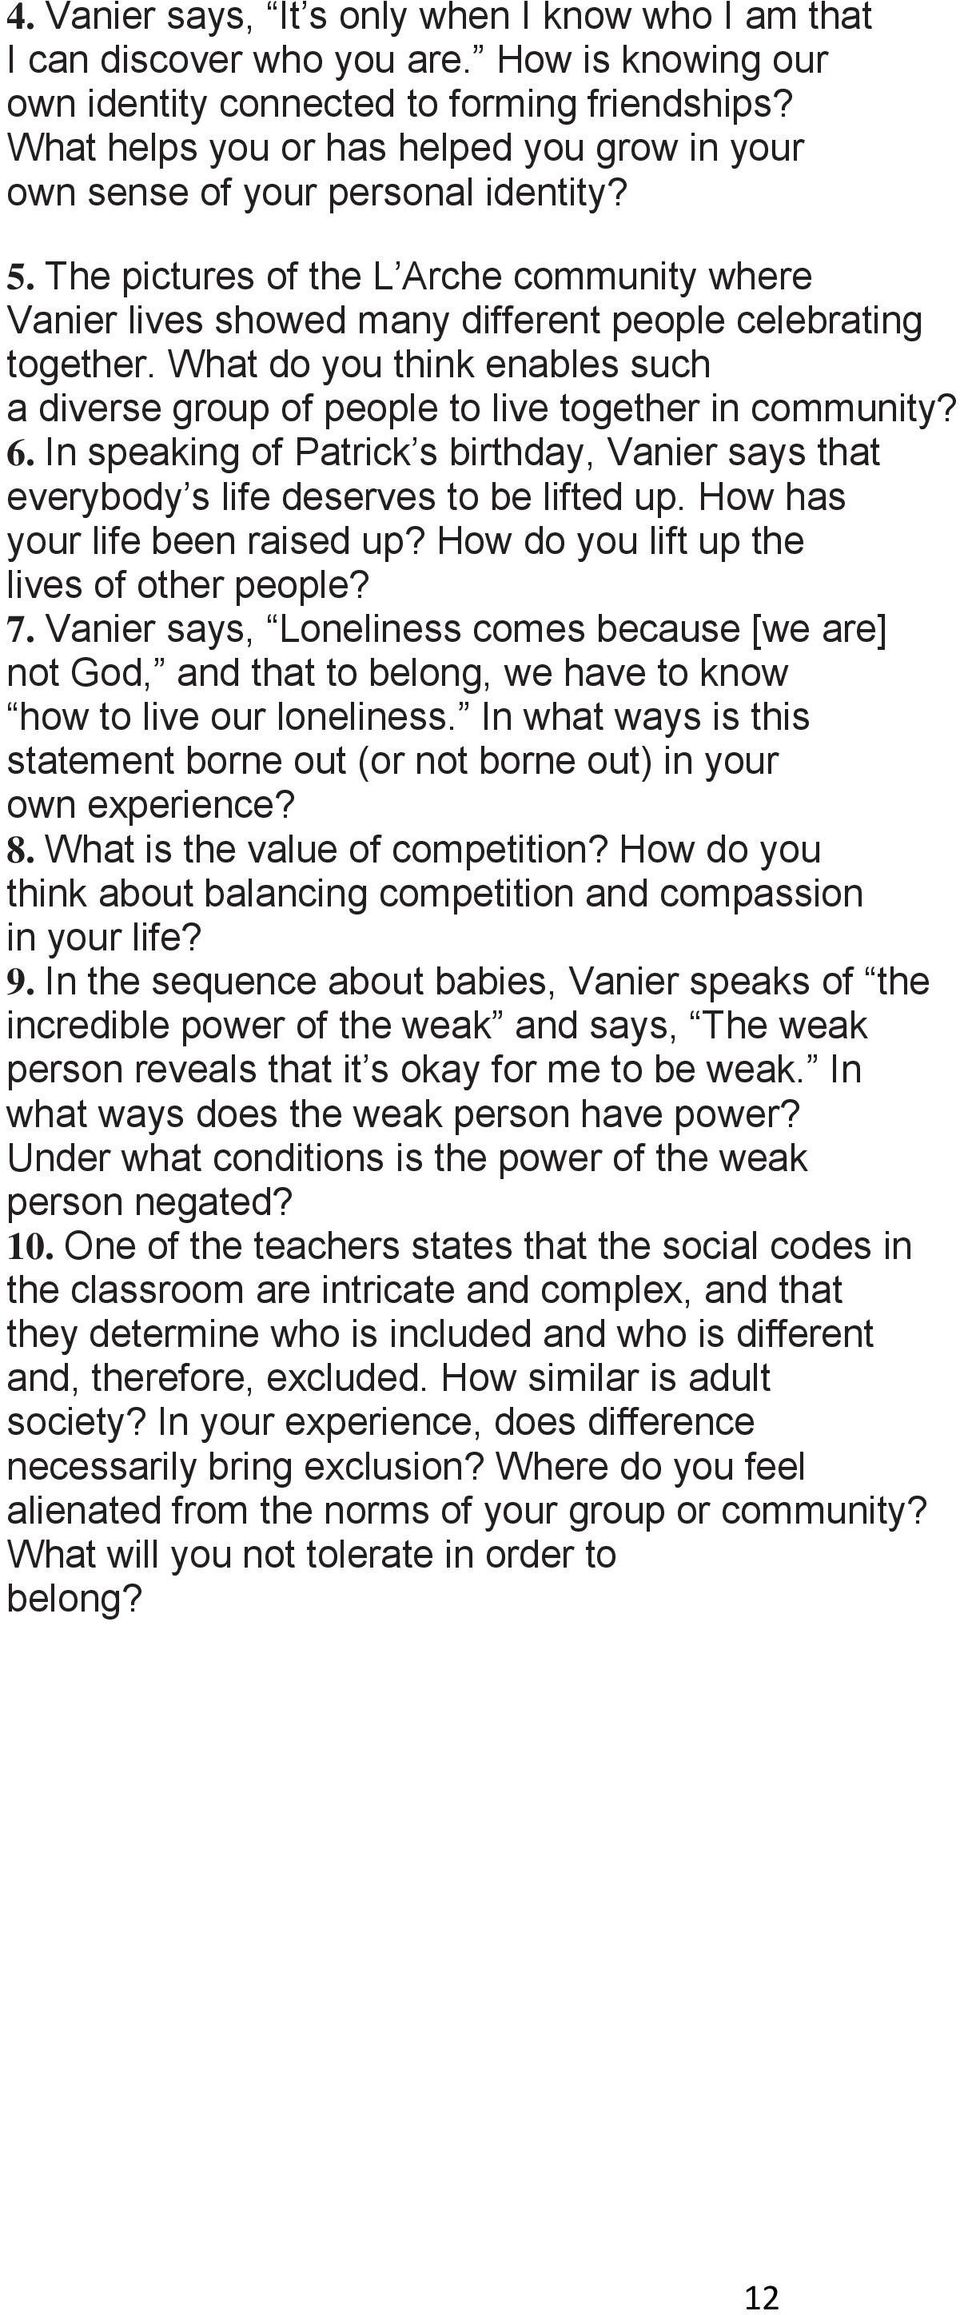 What do you think enables such a diverse group of people to live together in community? 6. In speaking of Patrick s birthday, Vanier says that everybody s life deserves to be lifted up.